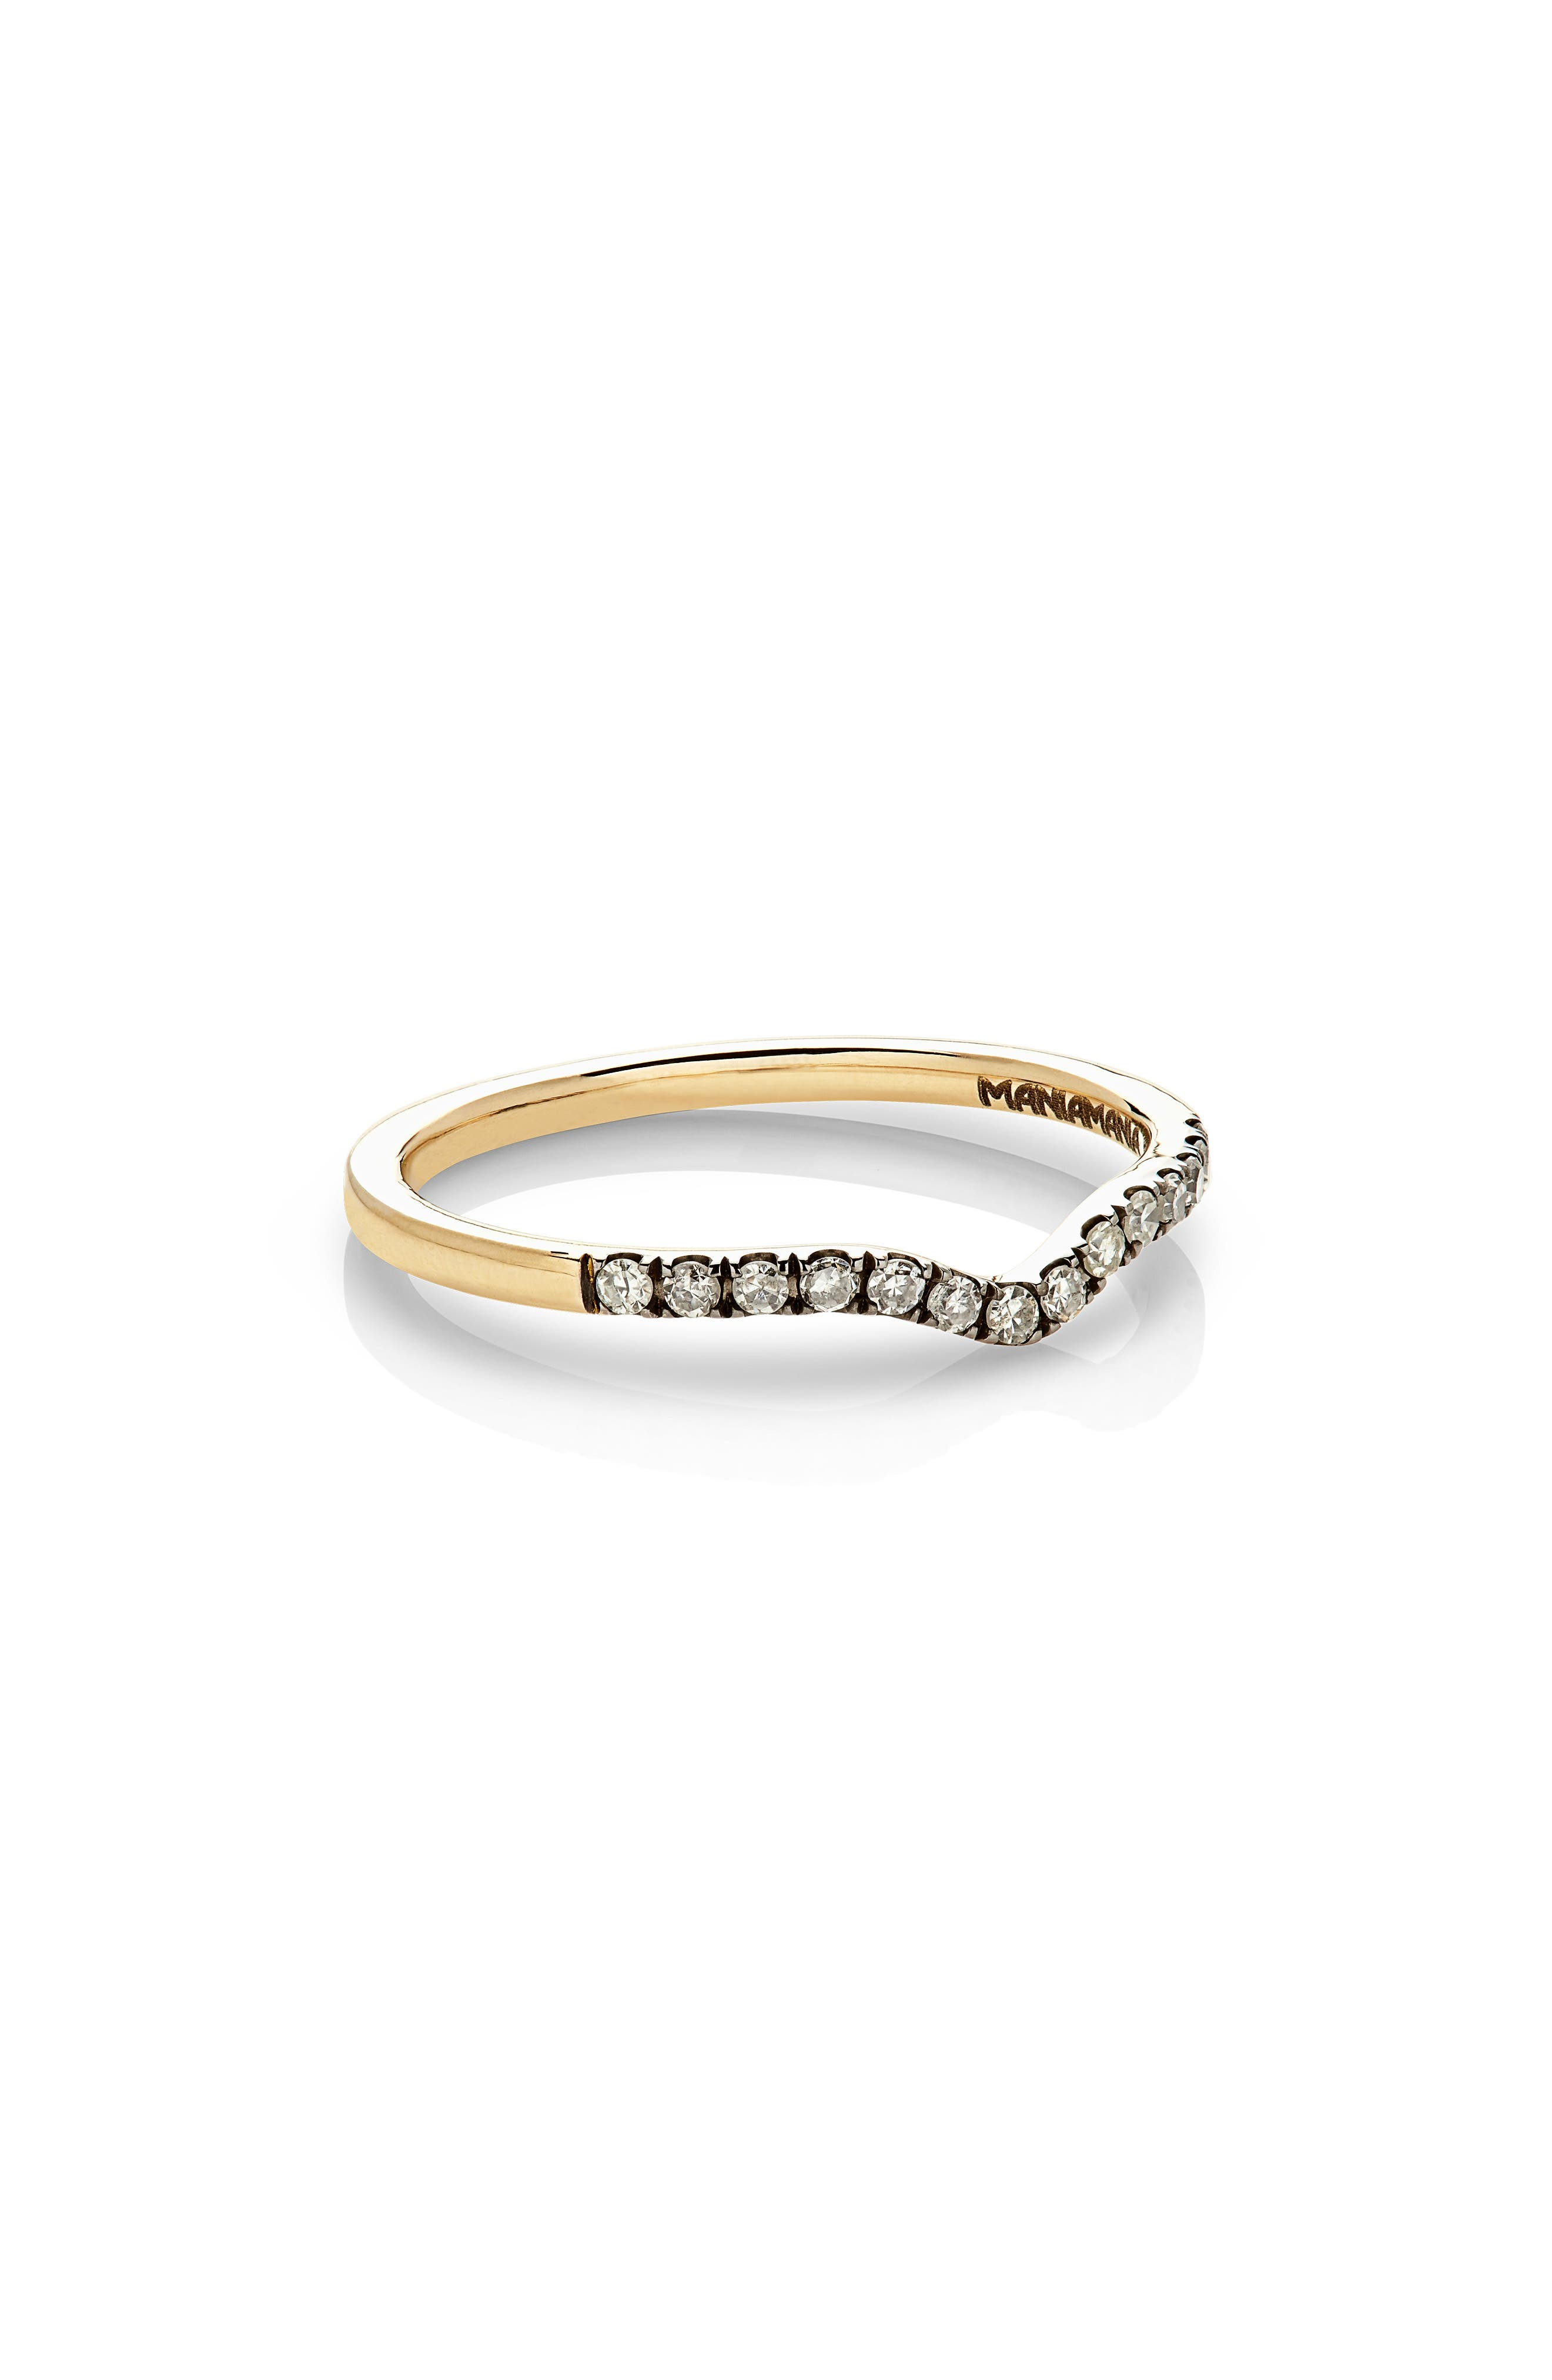 Unity Diamond Band Ring,                             Alternate thumbnail 2, color,                             YELLOW GOLD